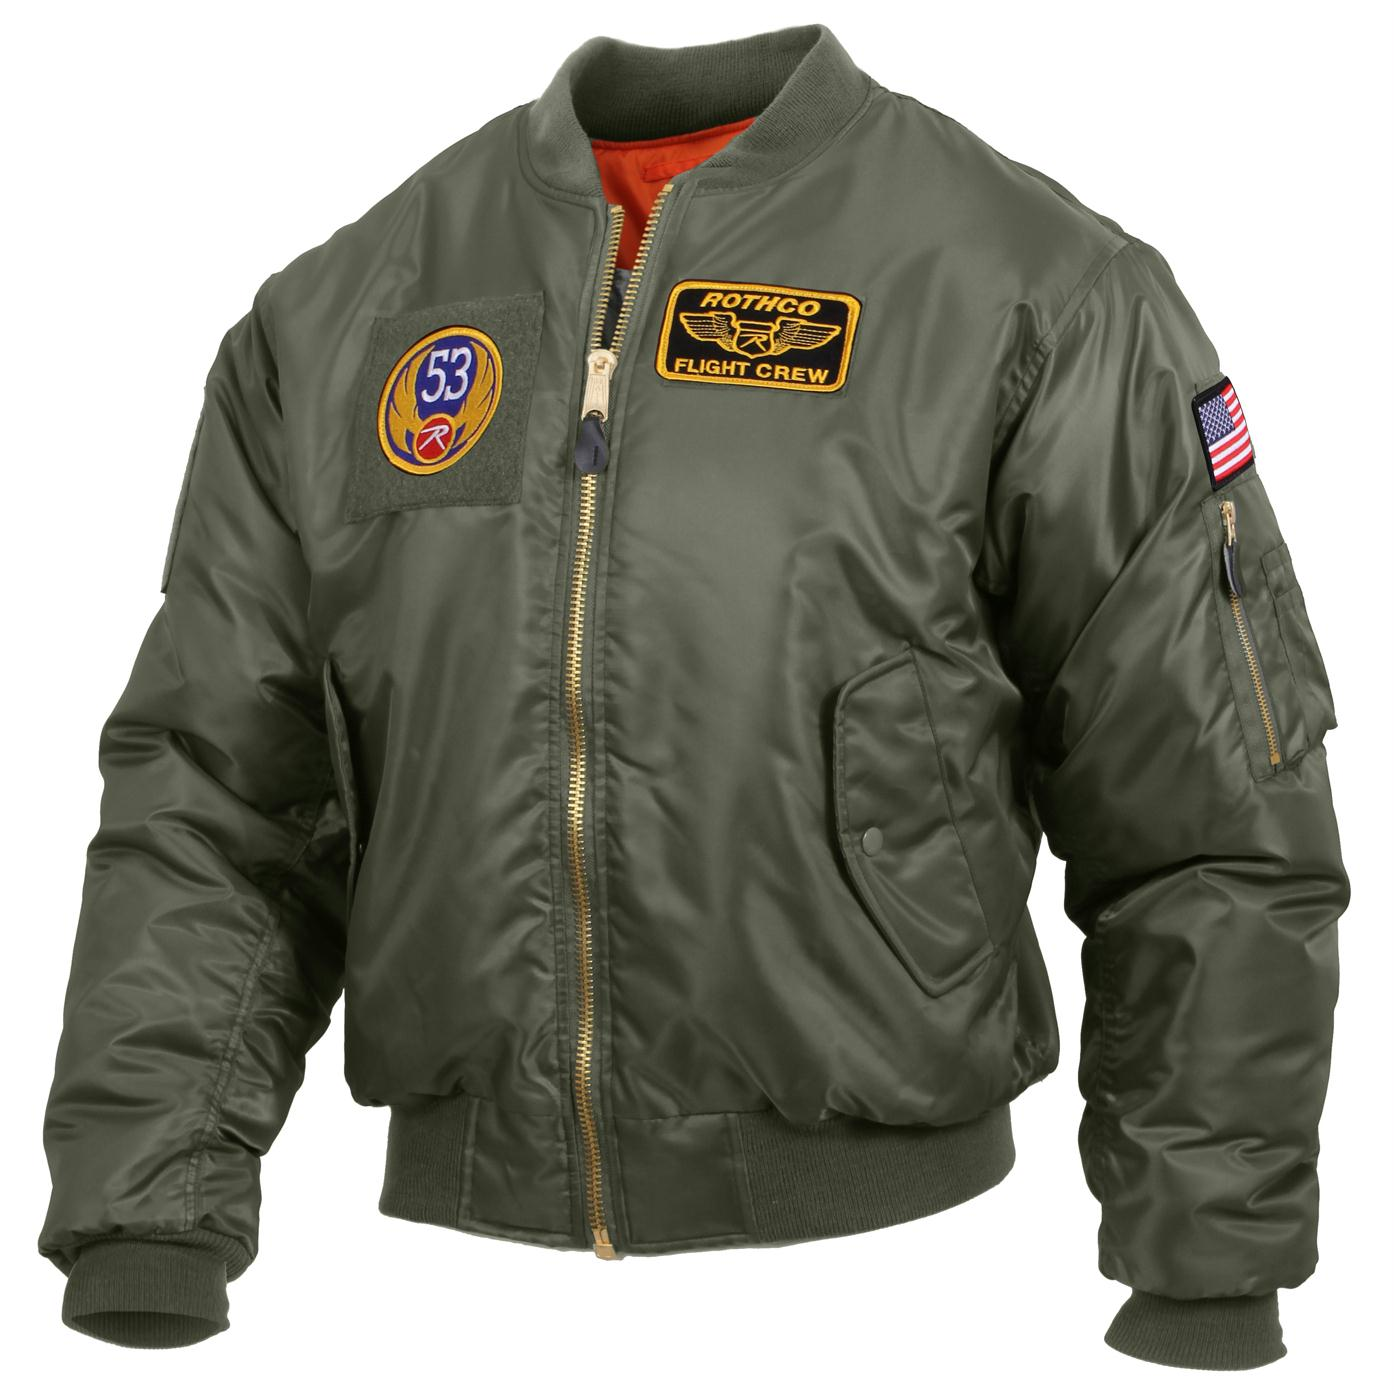 Rothco MA-1 Flight Jacket with Patches - Sage Green / S